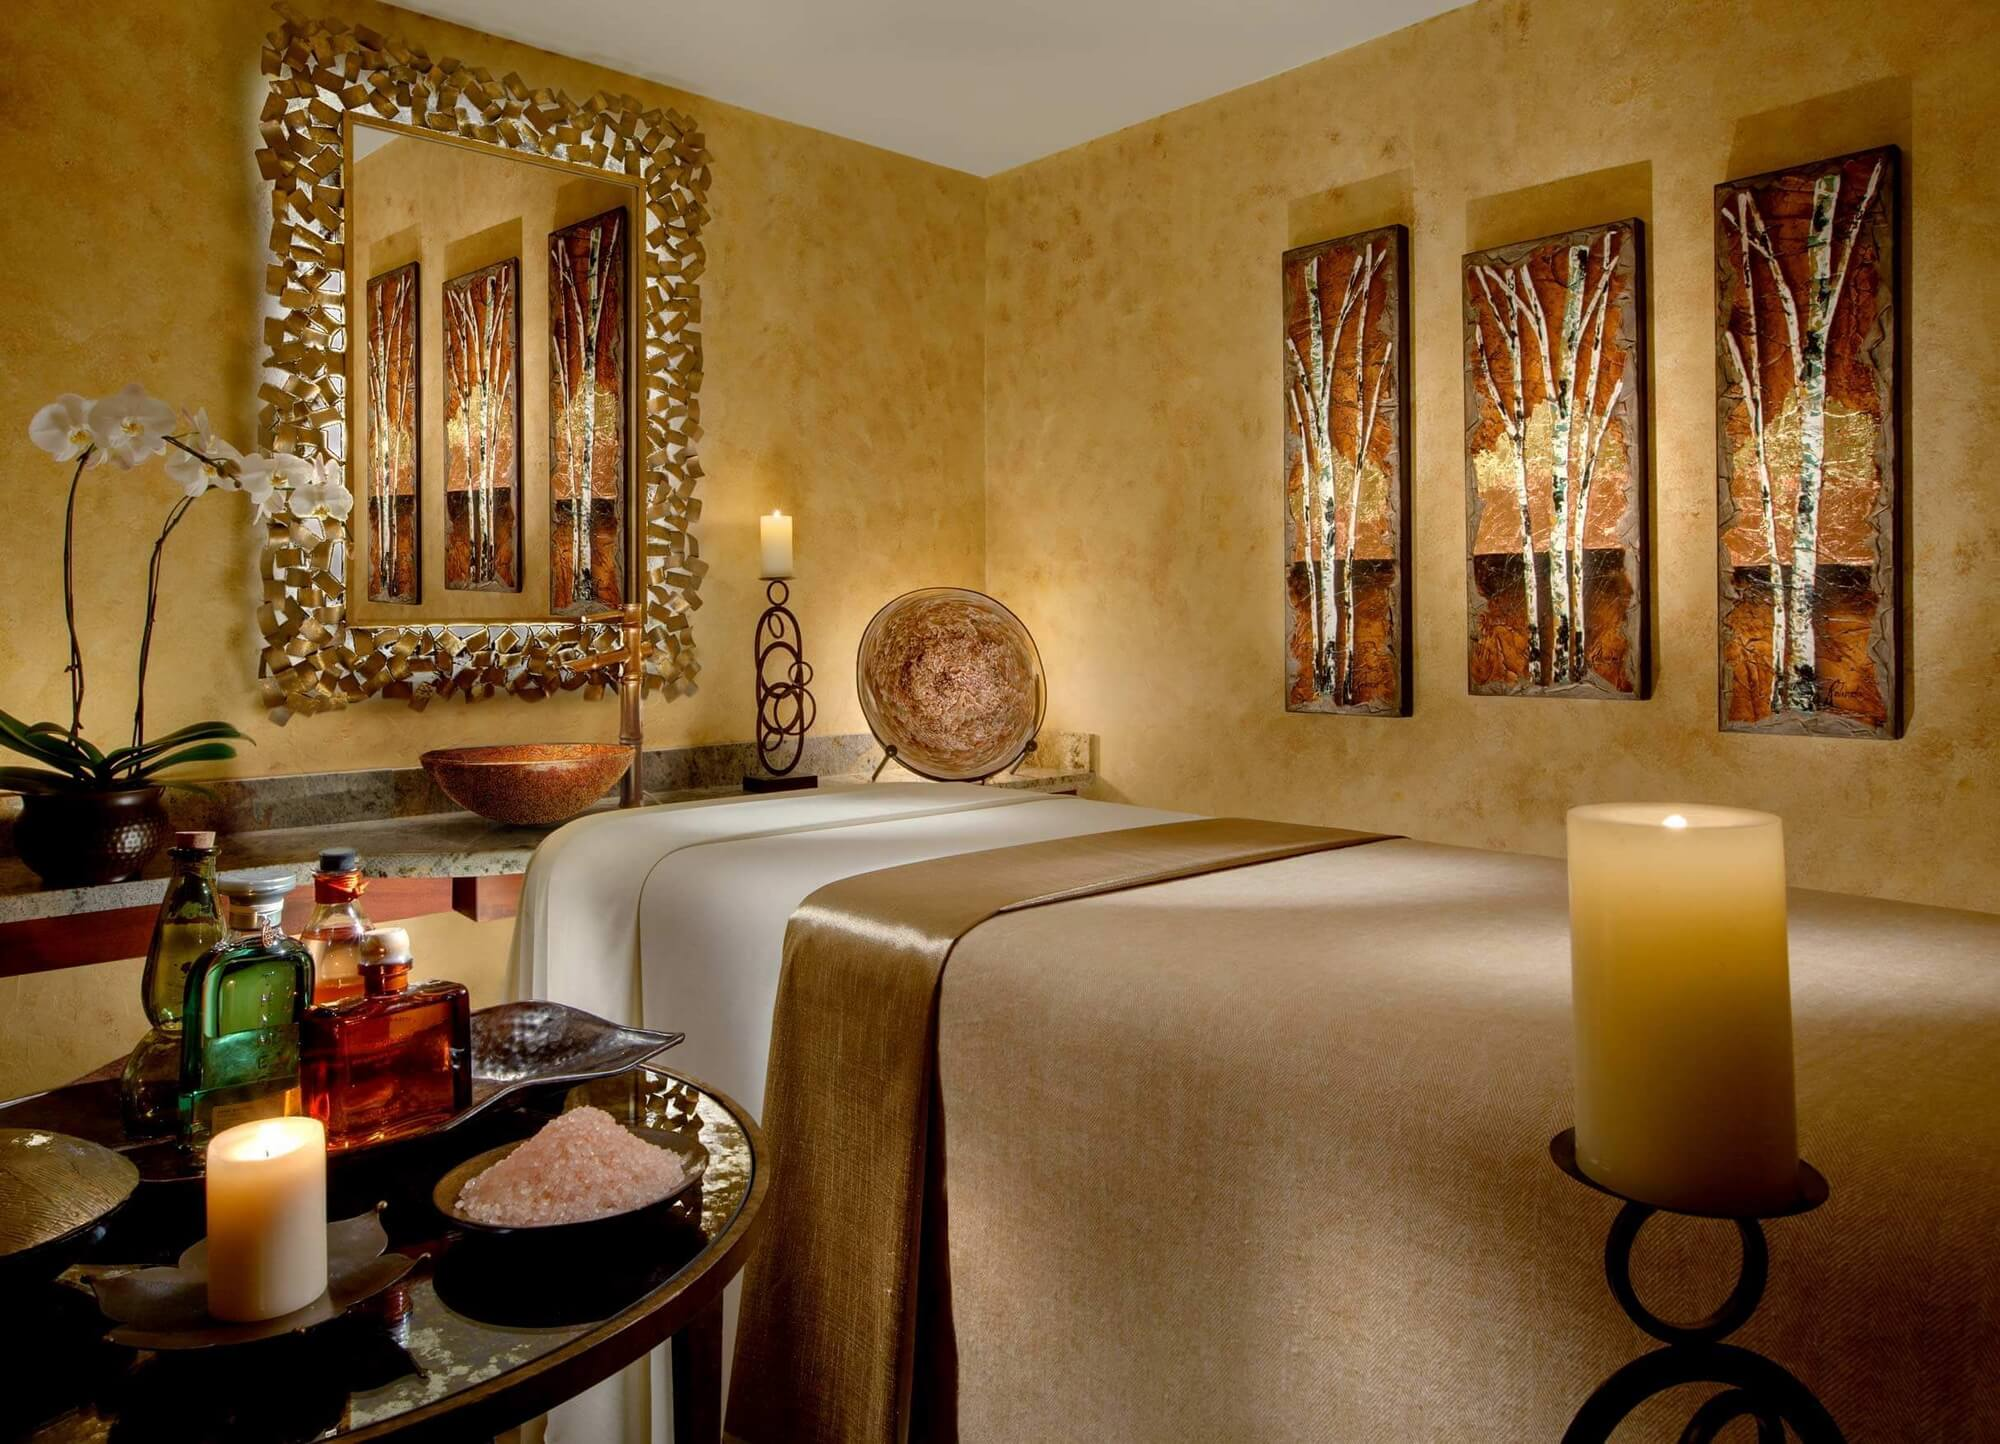 massage room with candles, salts and oils on a table